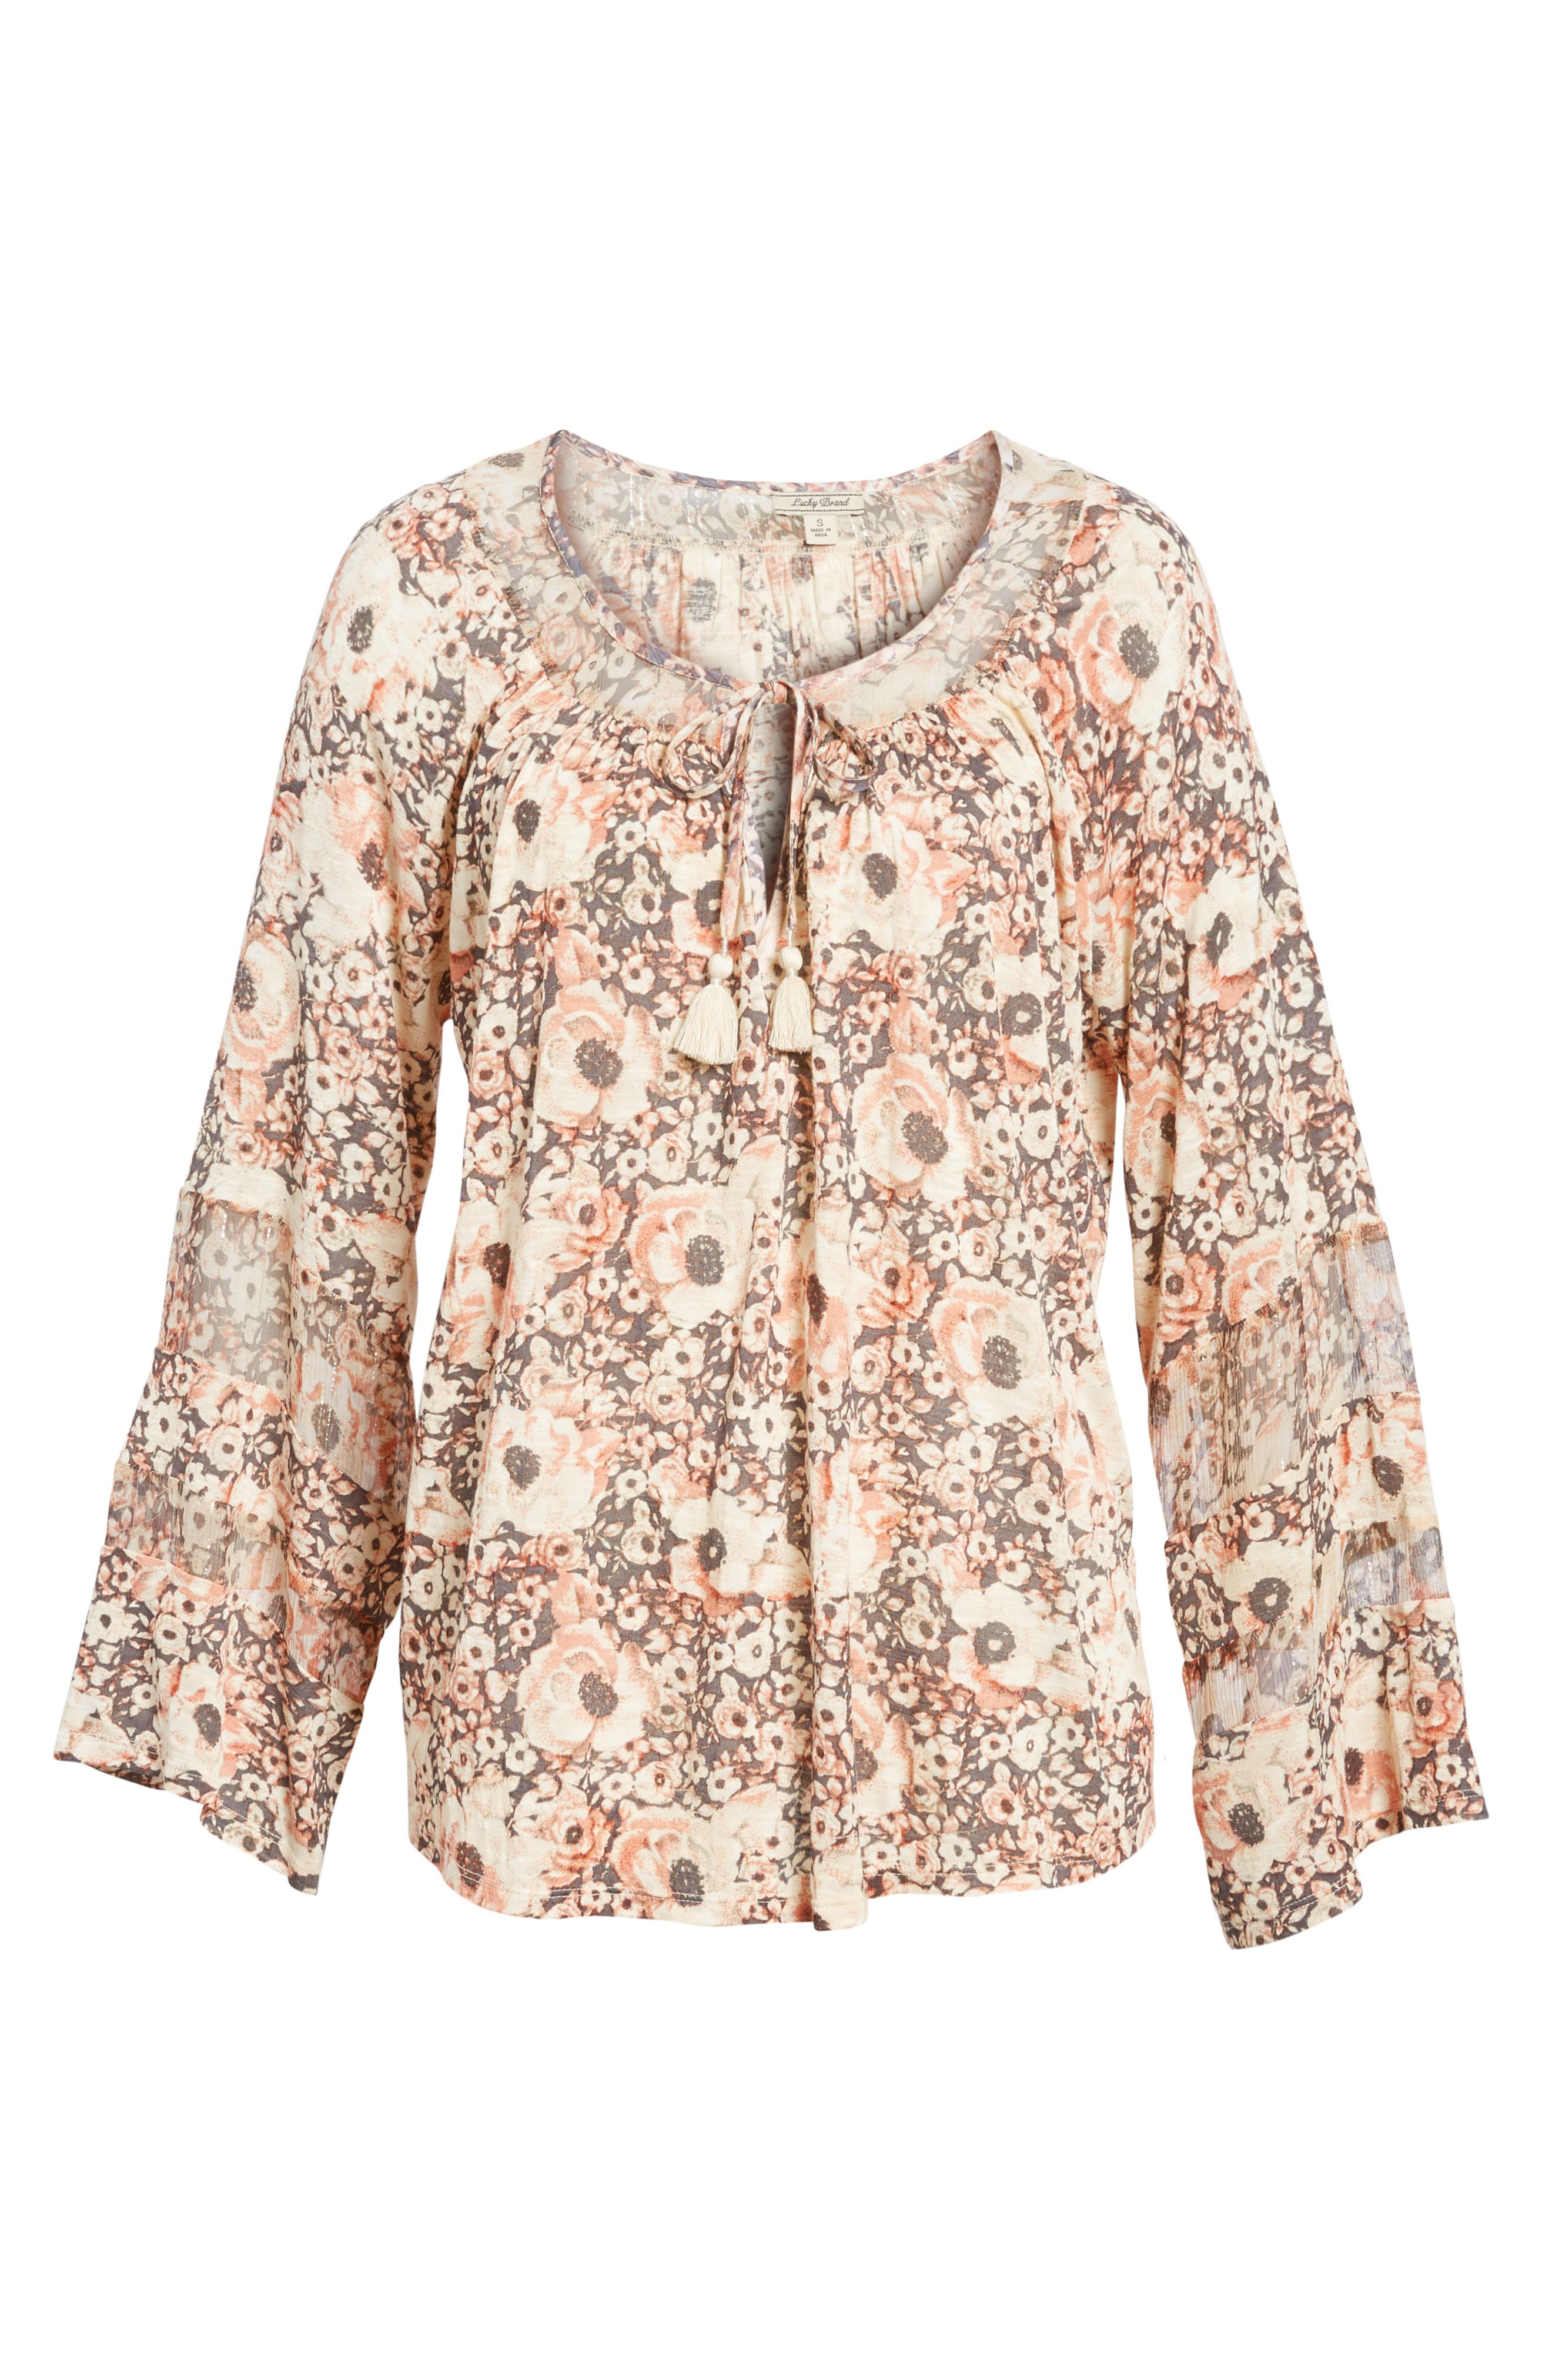 Bell Sleeve Floral Mixed Media Top,                             Alternate thumbnail 6, color,                             650